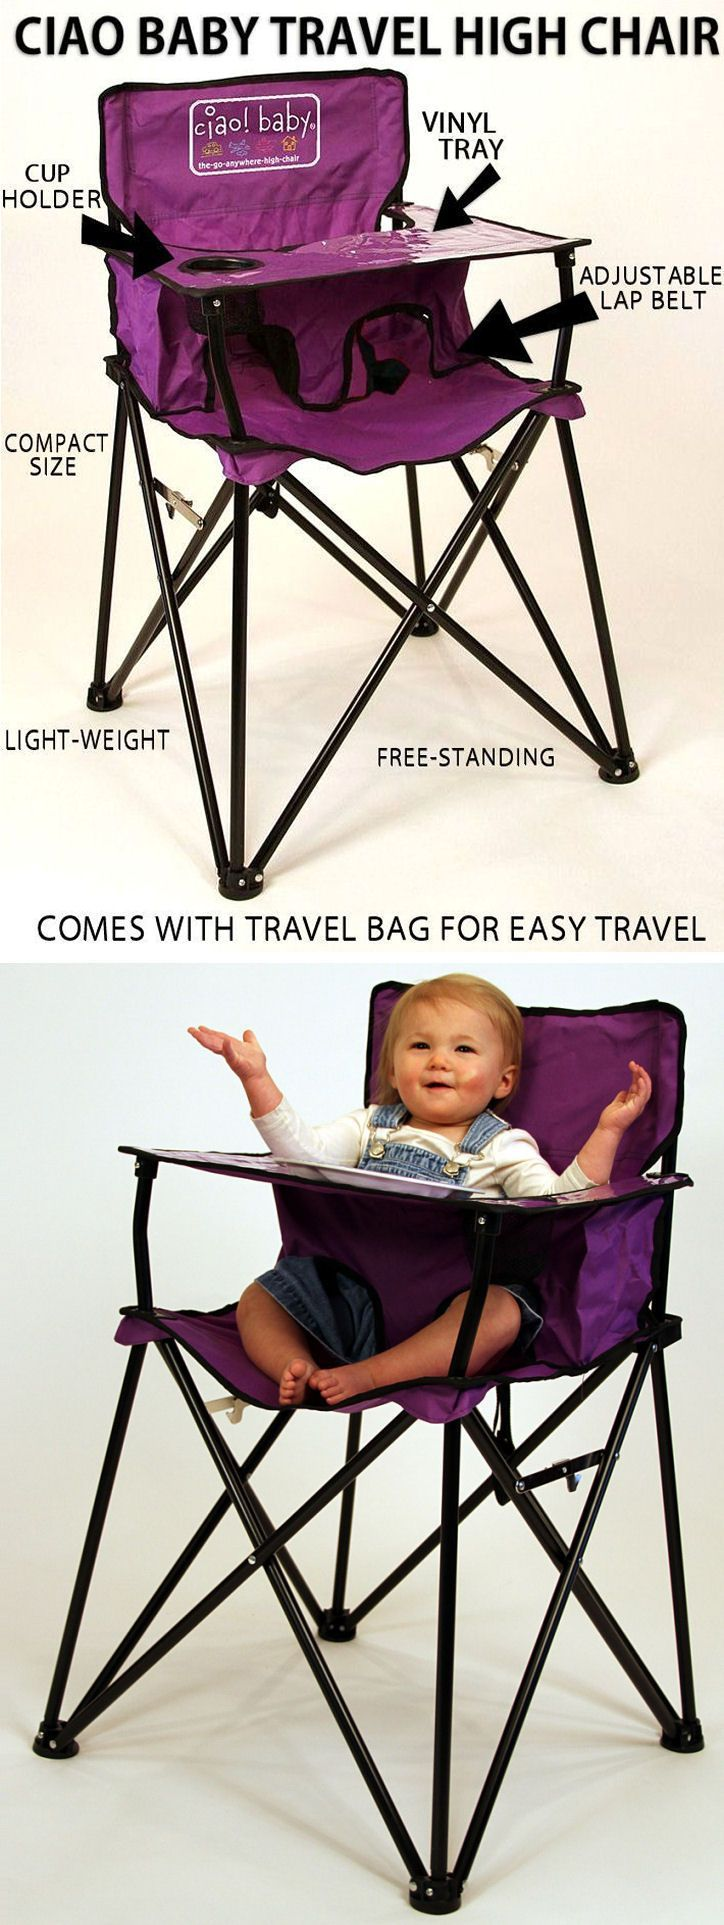 Portable Baby High Chair | Folds Up For Easy Travel. Great For Park, Camping, Restaurants & etc